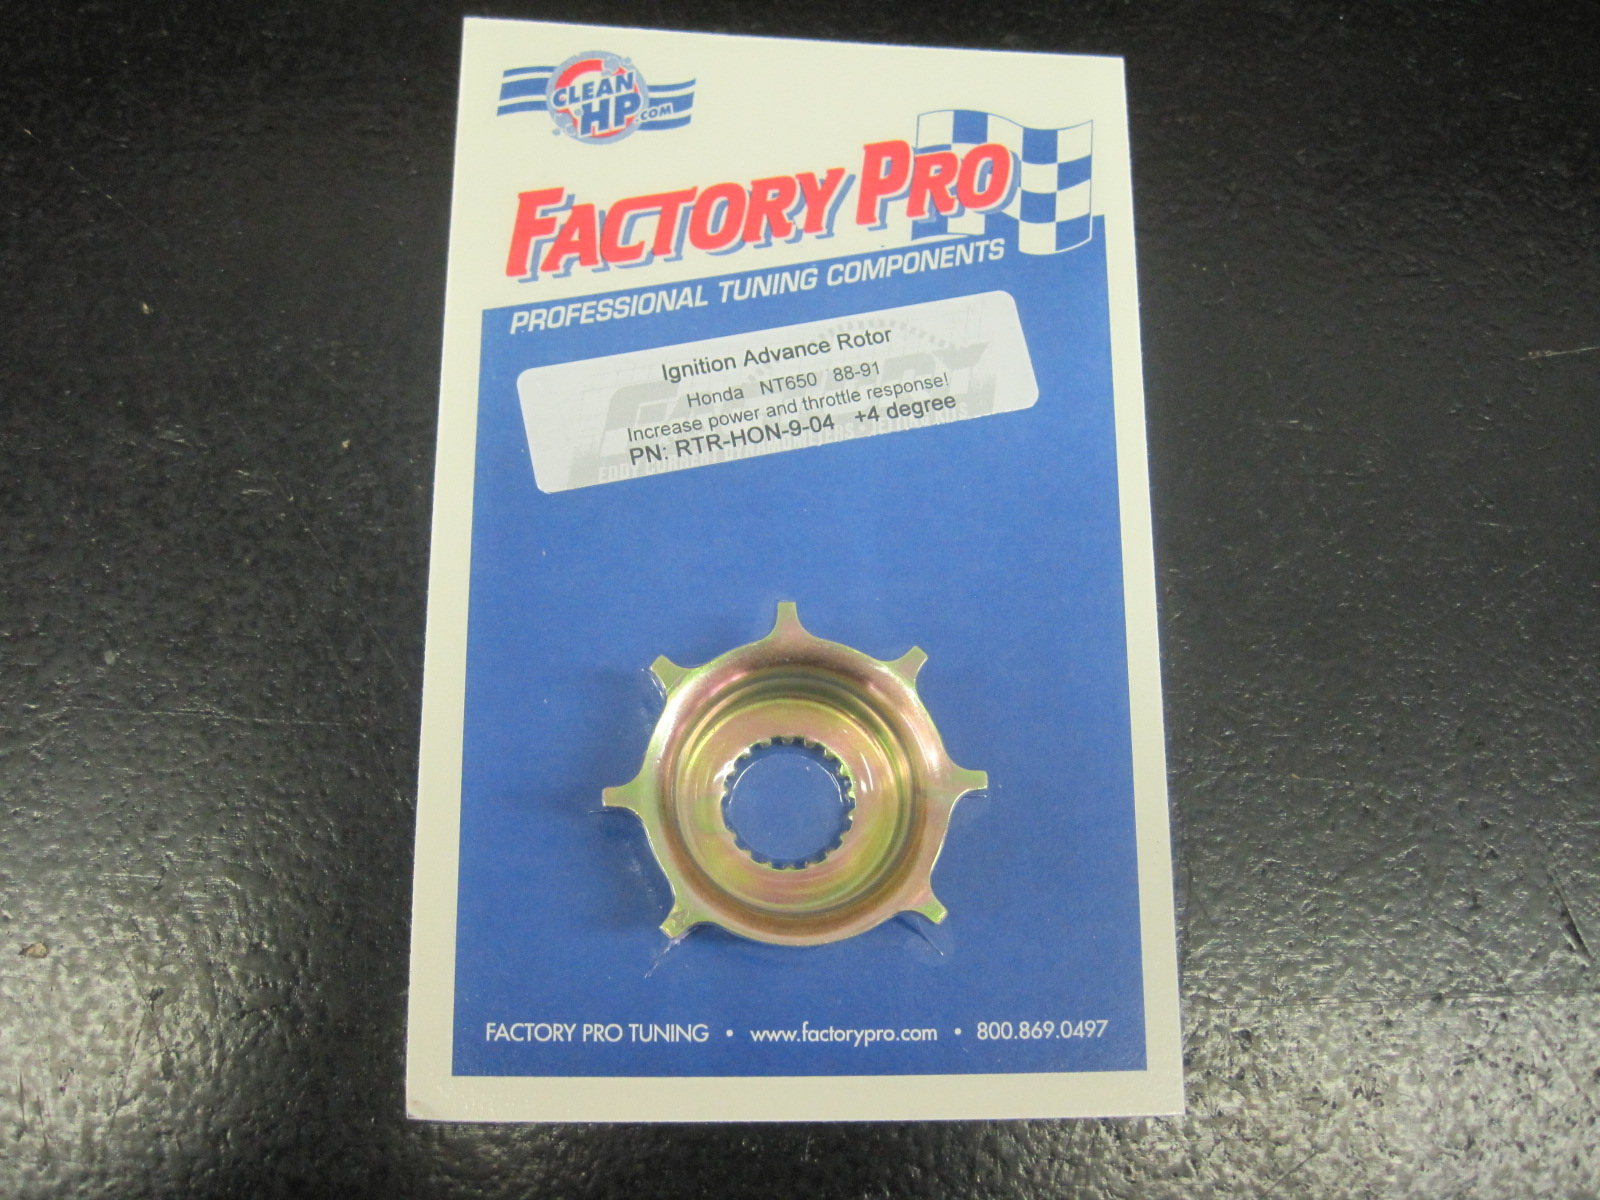 Factory Pro Ignition Advancer